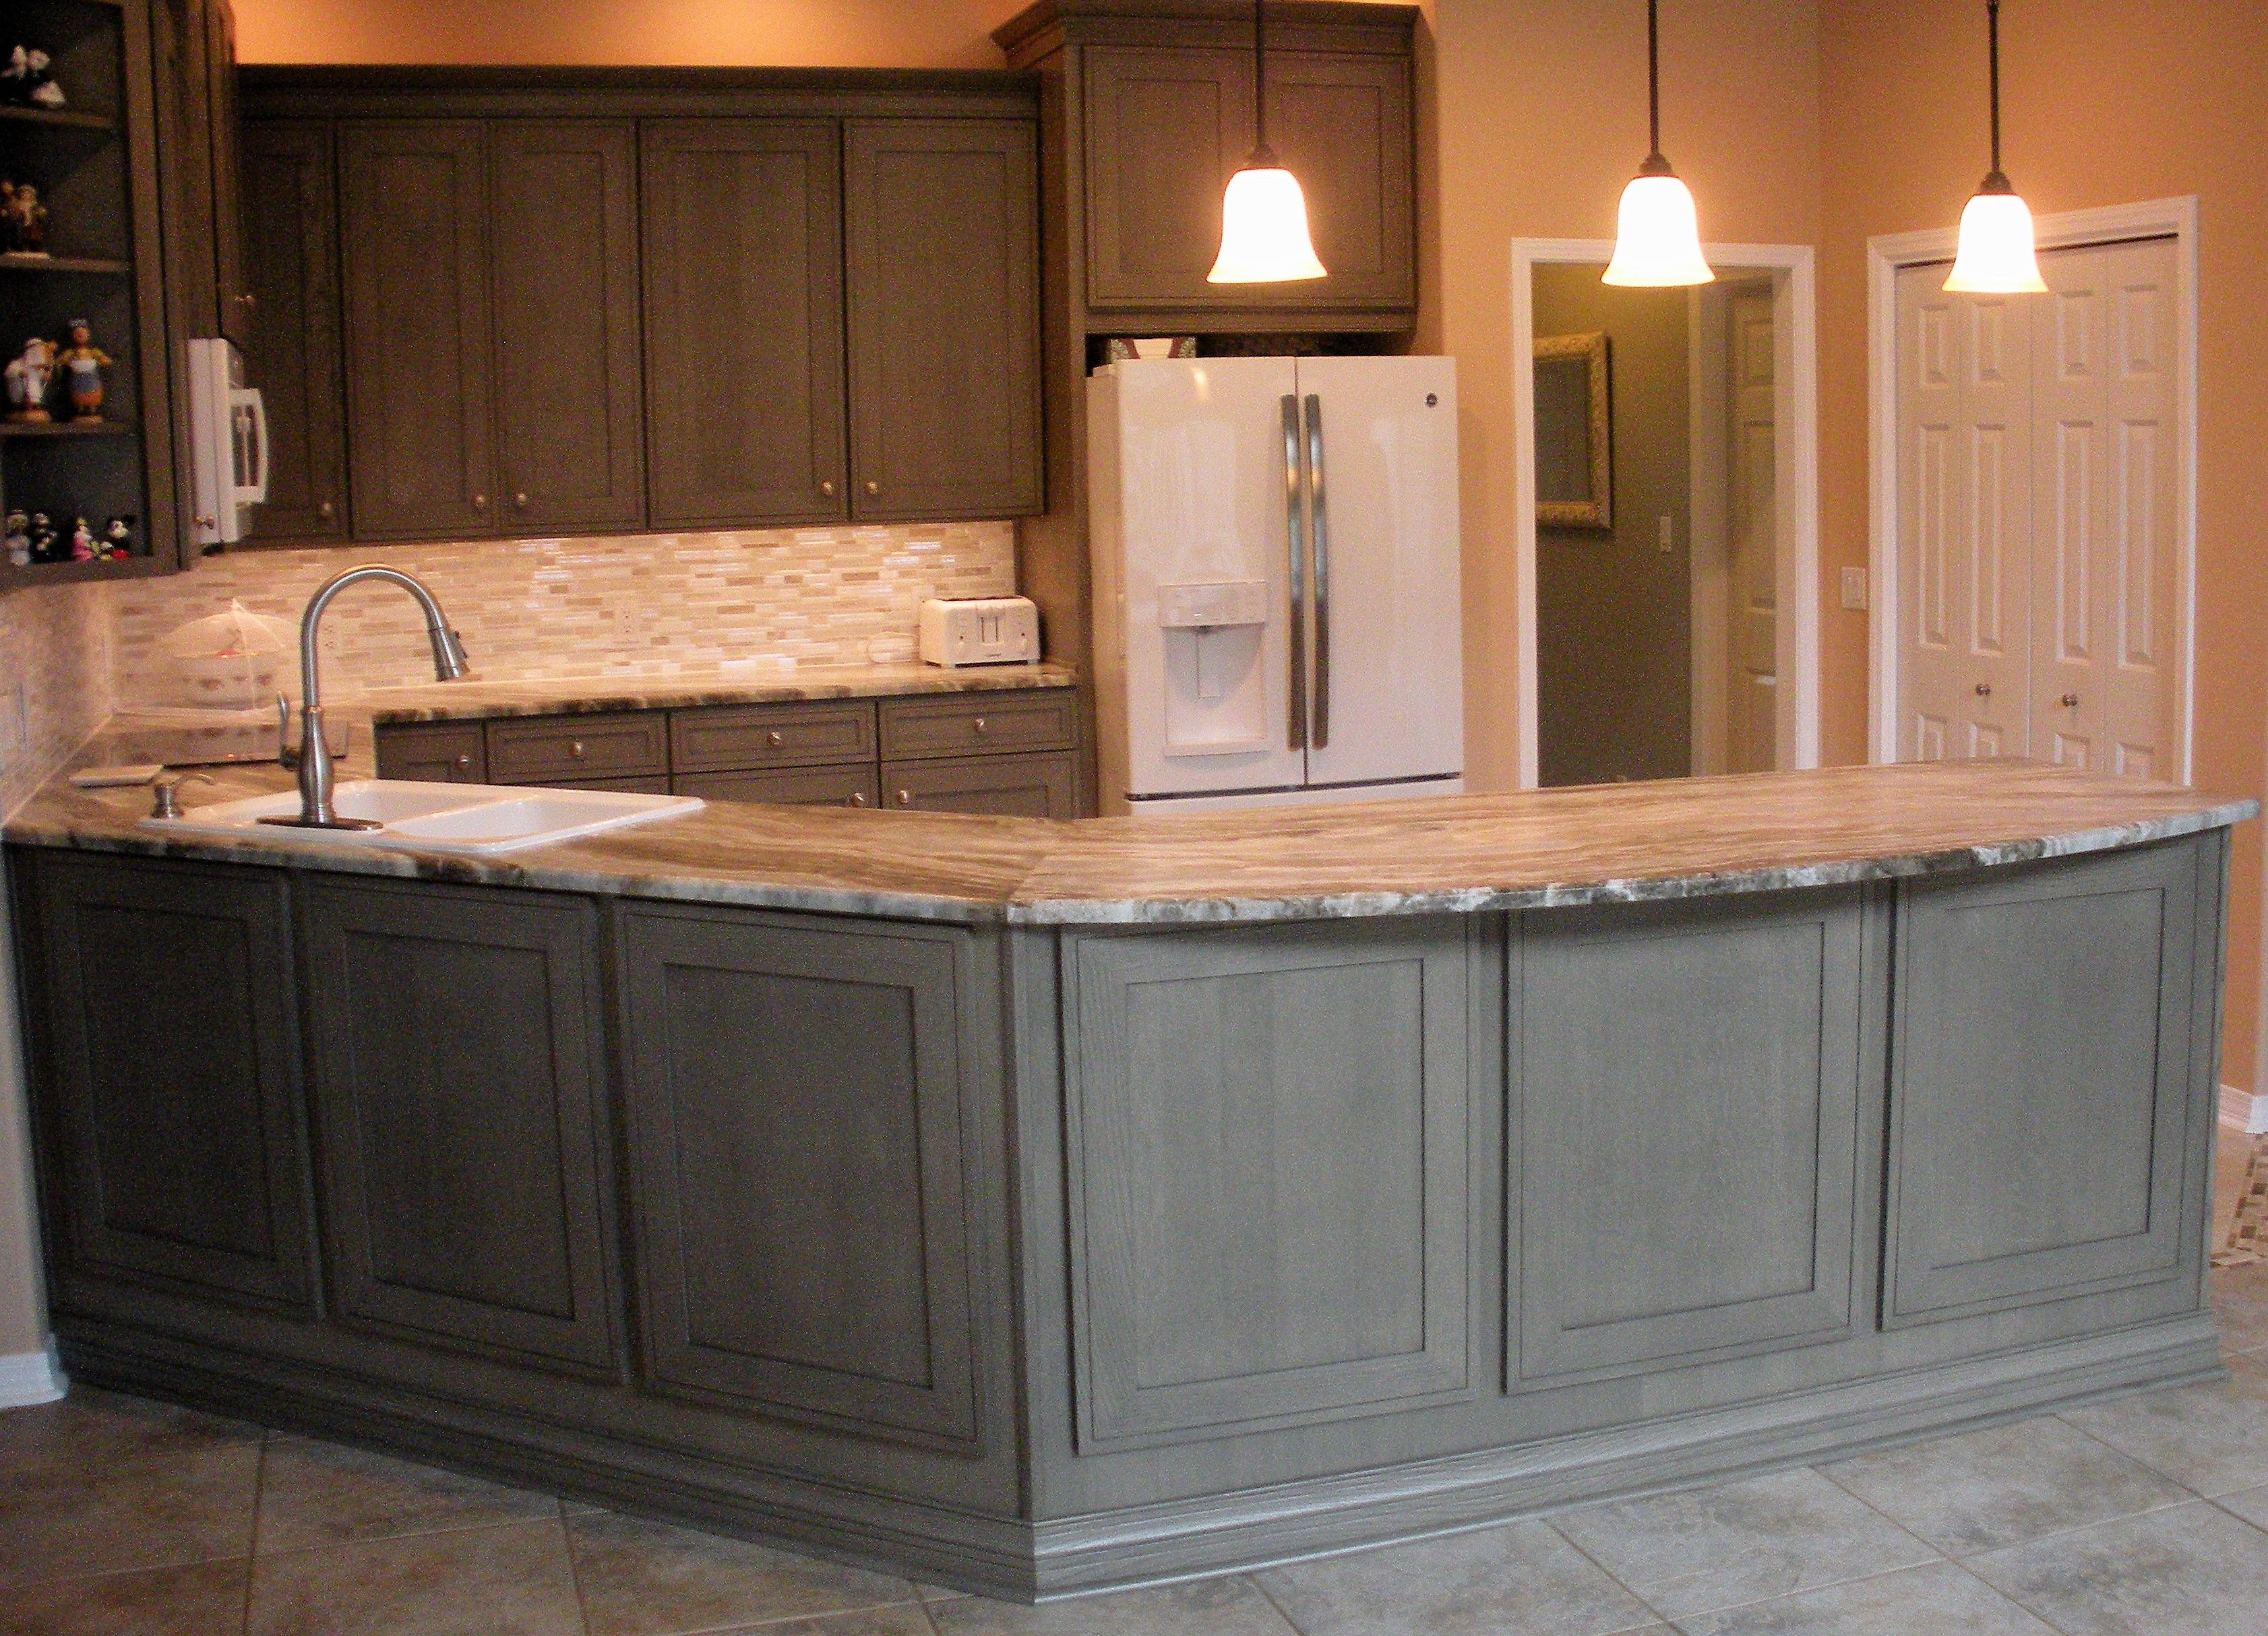 Gray Quartersawn Oak Kitchen Real Kitchen Kitchen Cabinet Remodel Kitchen